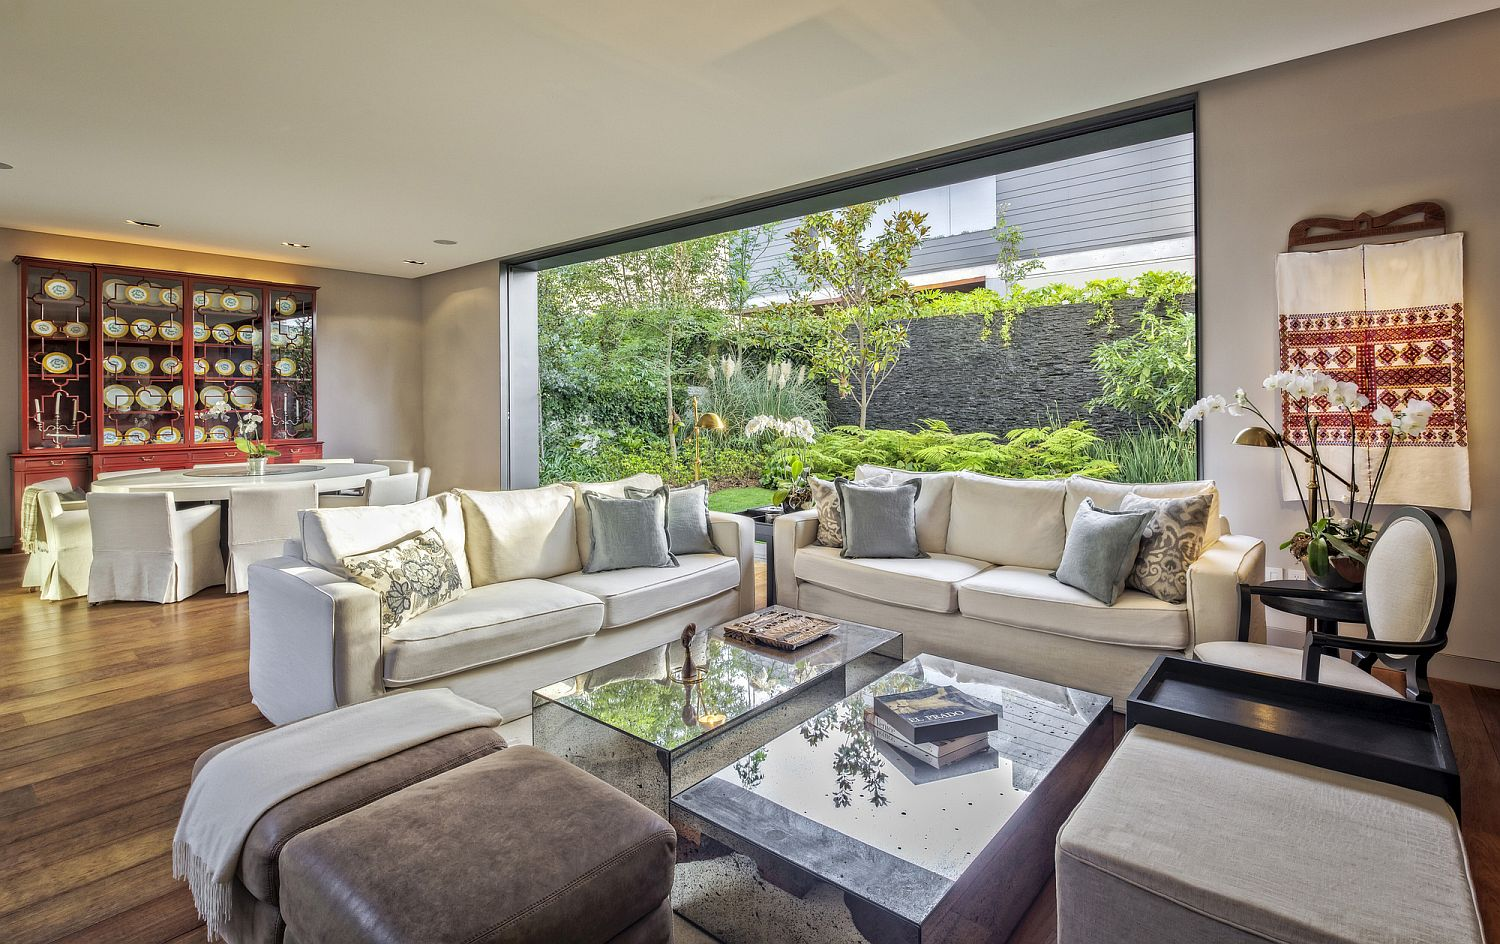 Exquisite living area with dining space next to it and a fabulous garden outside